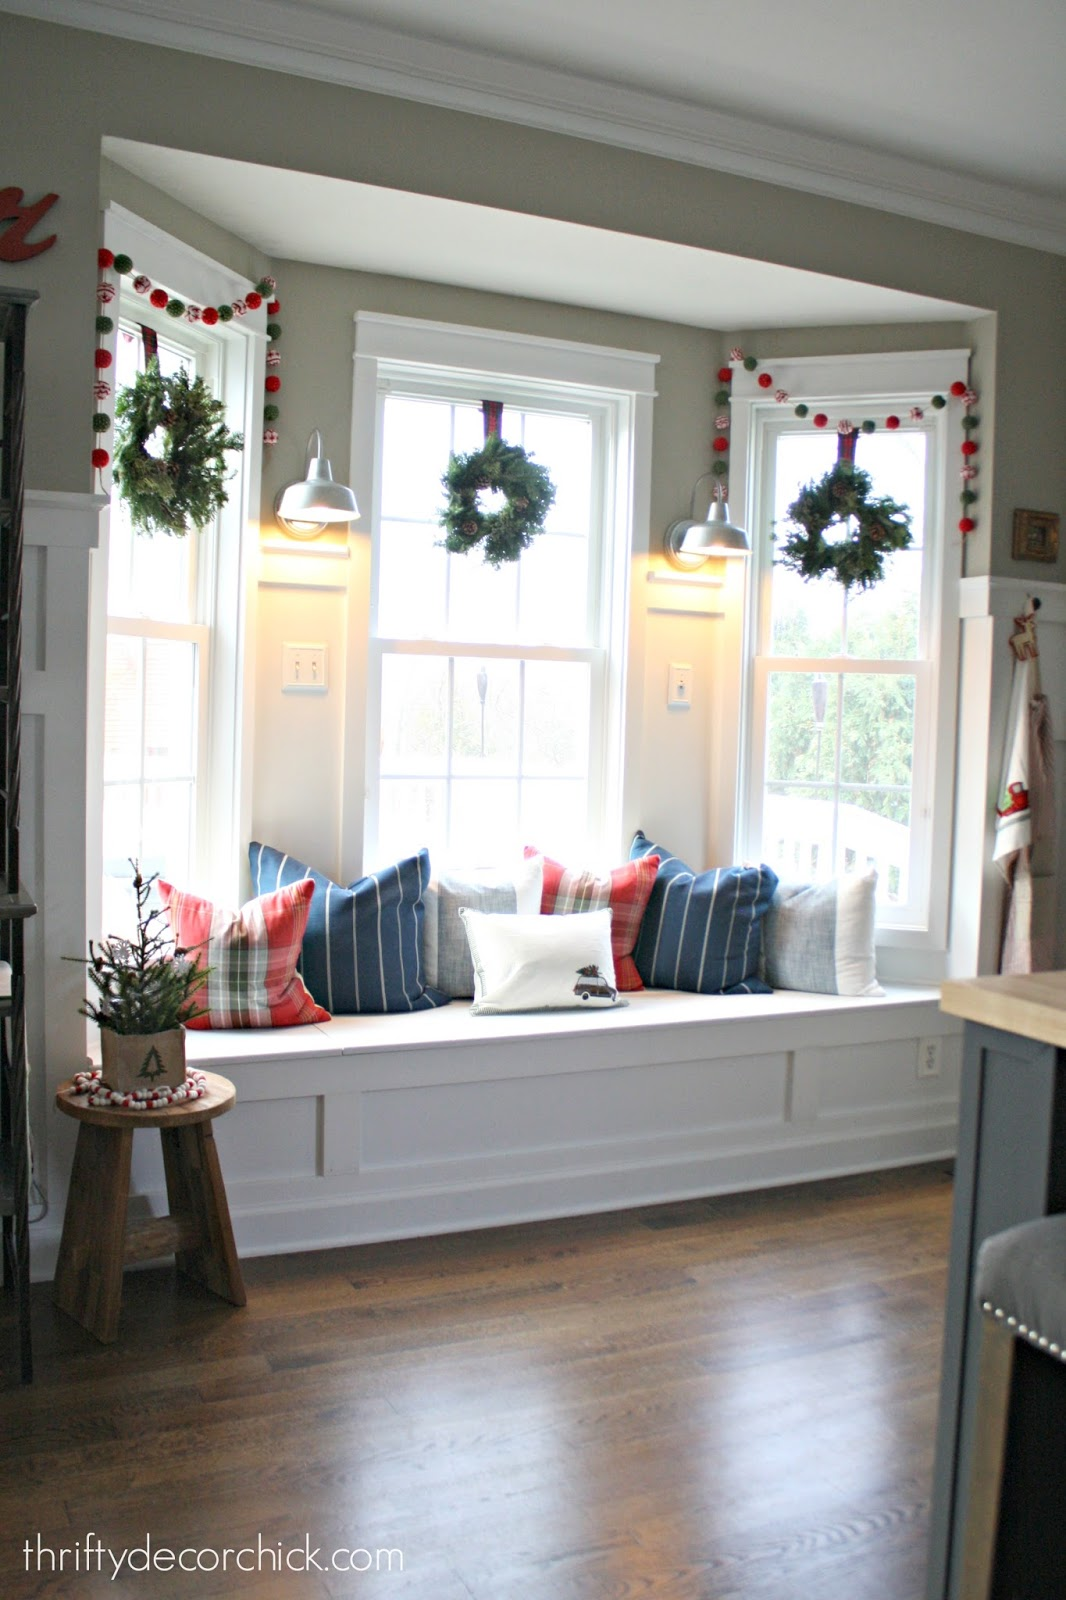 Last minute christmas home tour from thrifty decor chick for Thrifty decor